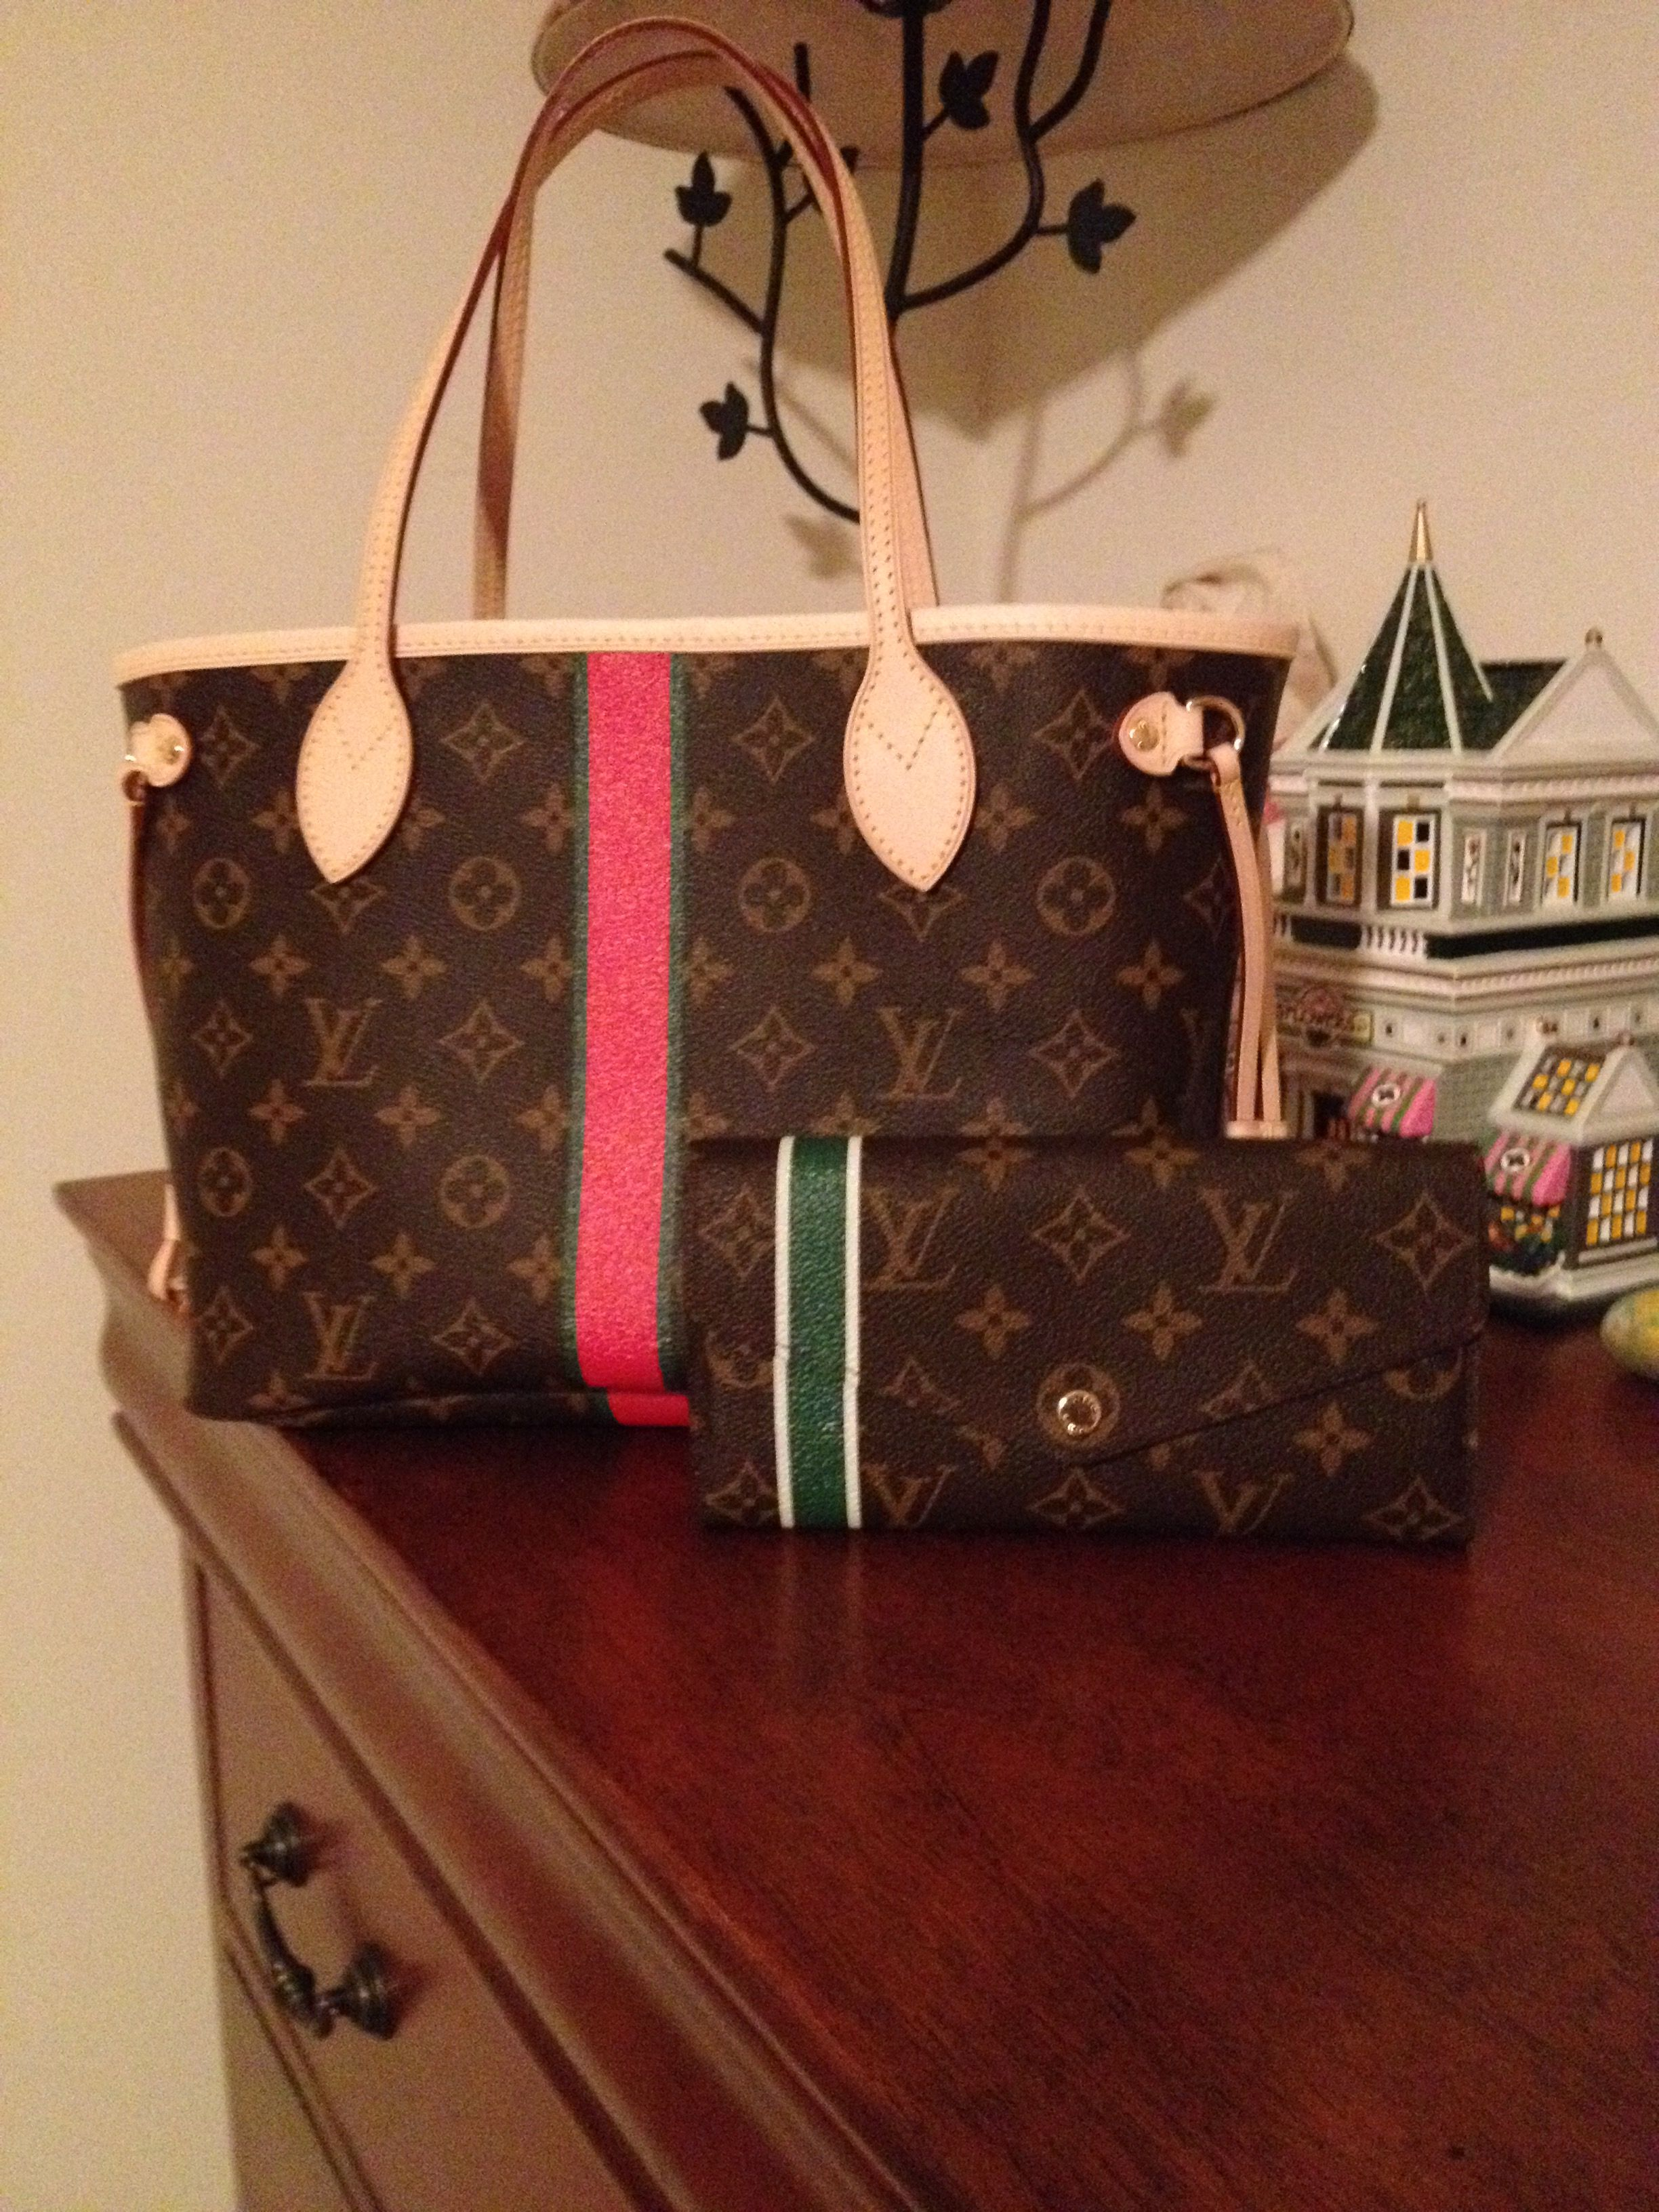 46b2d45248 Louis Vuitton Neverfull PM and Sarah NM wallet, both in the Mon ...